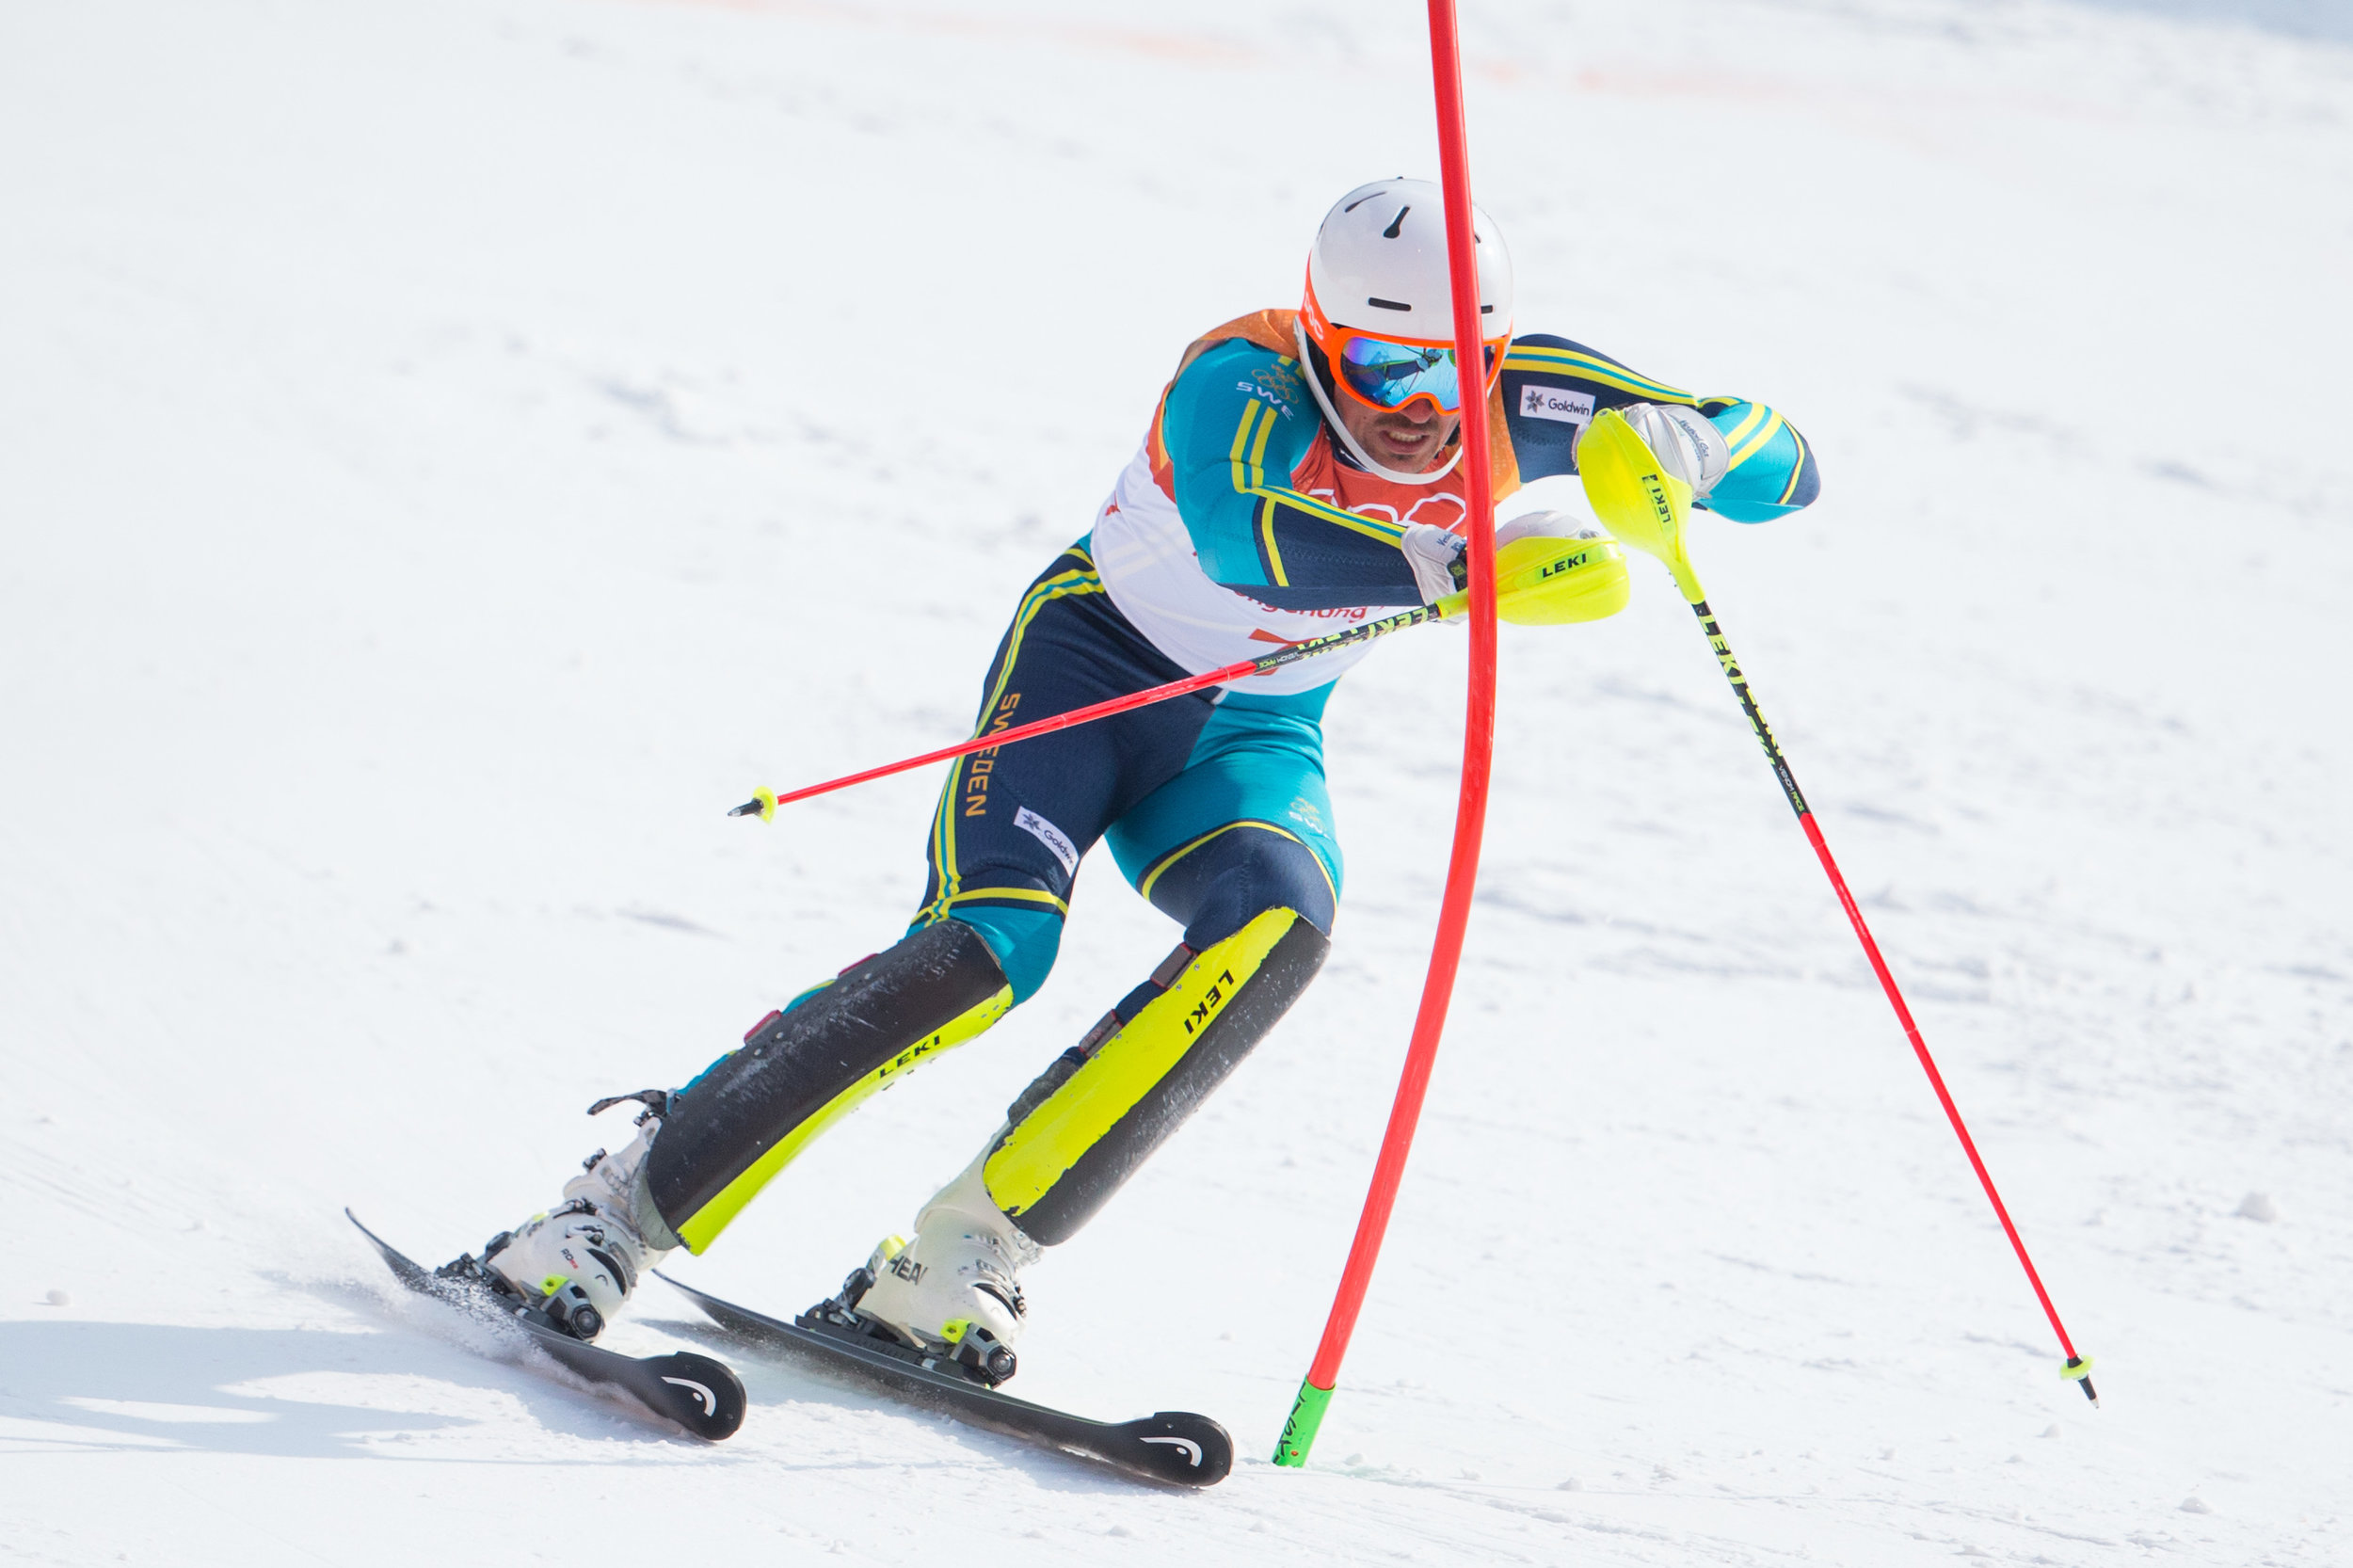 Andre Myhrer of Sweden competes in the second run the Men's Slalom Final at Yongpyong Alpine Centre in Pyeongchang, South Korea on February 22, 2018. Myhrer took gold with a total time of 1:38.99. Photo by Matthew Healey/UPI